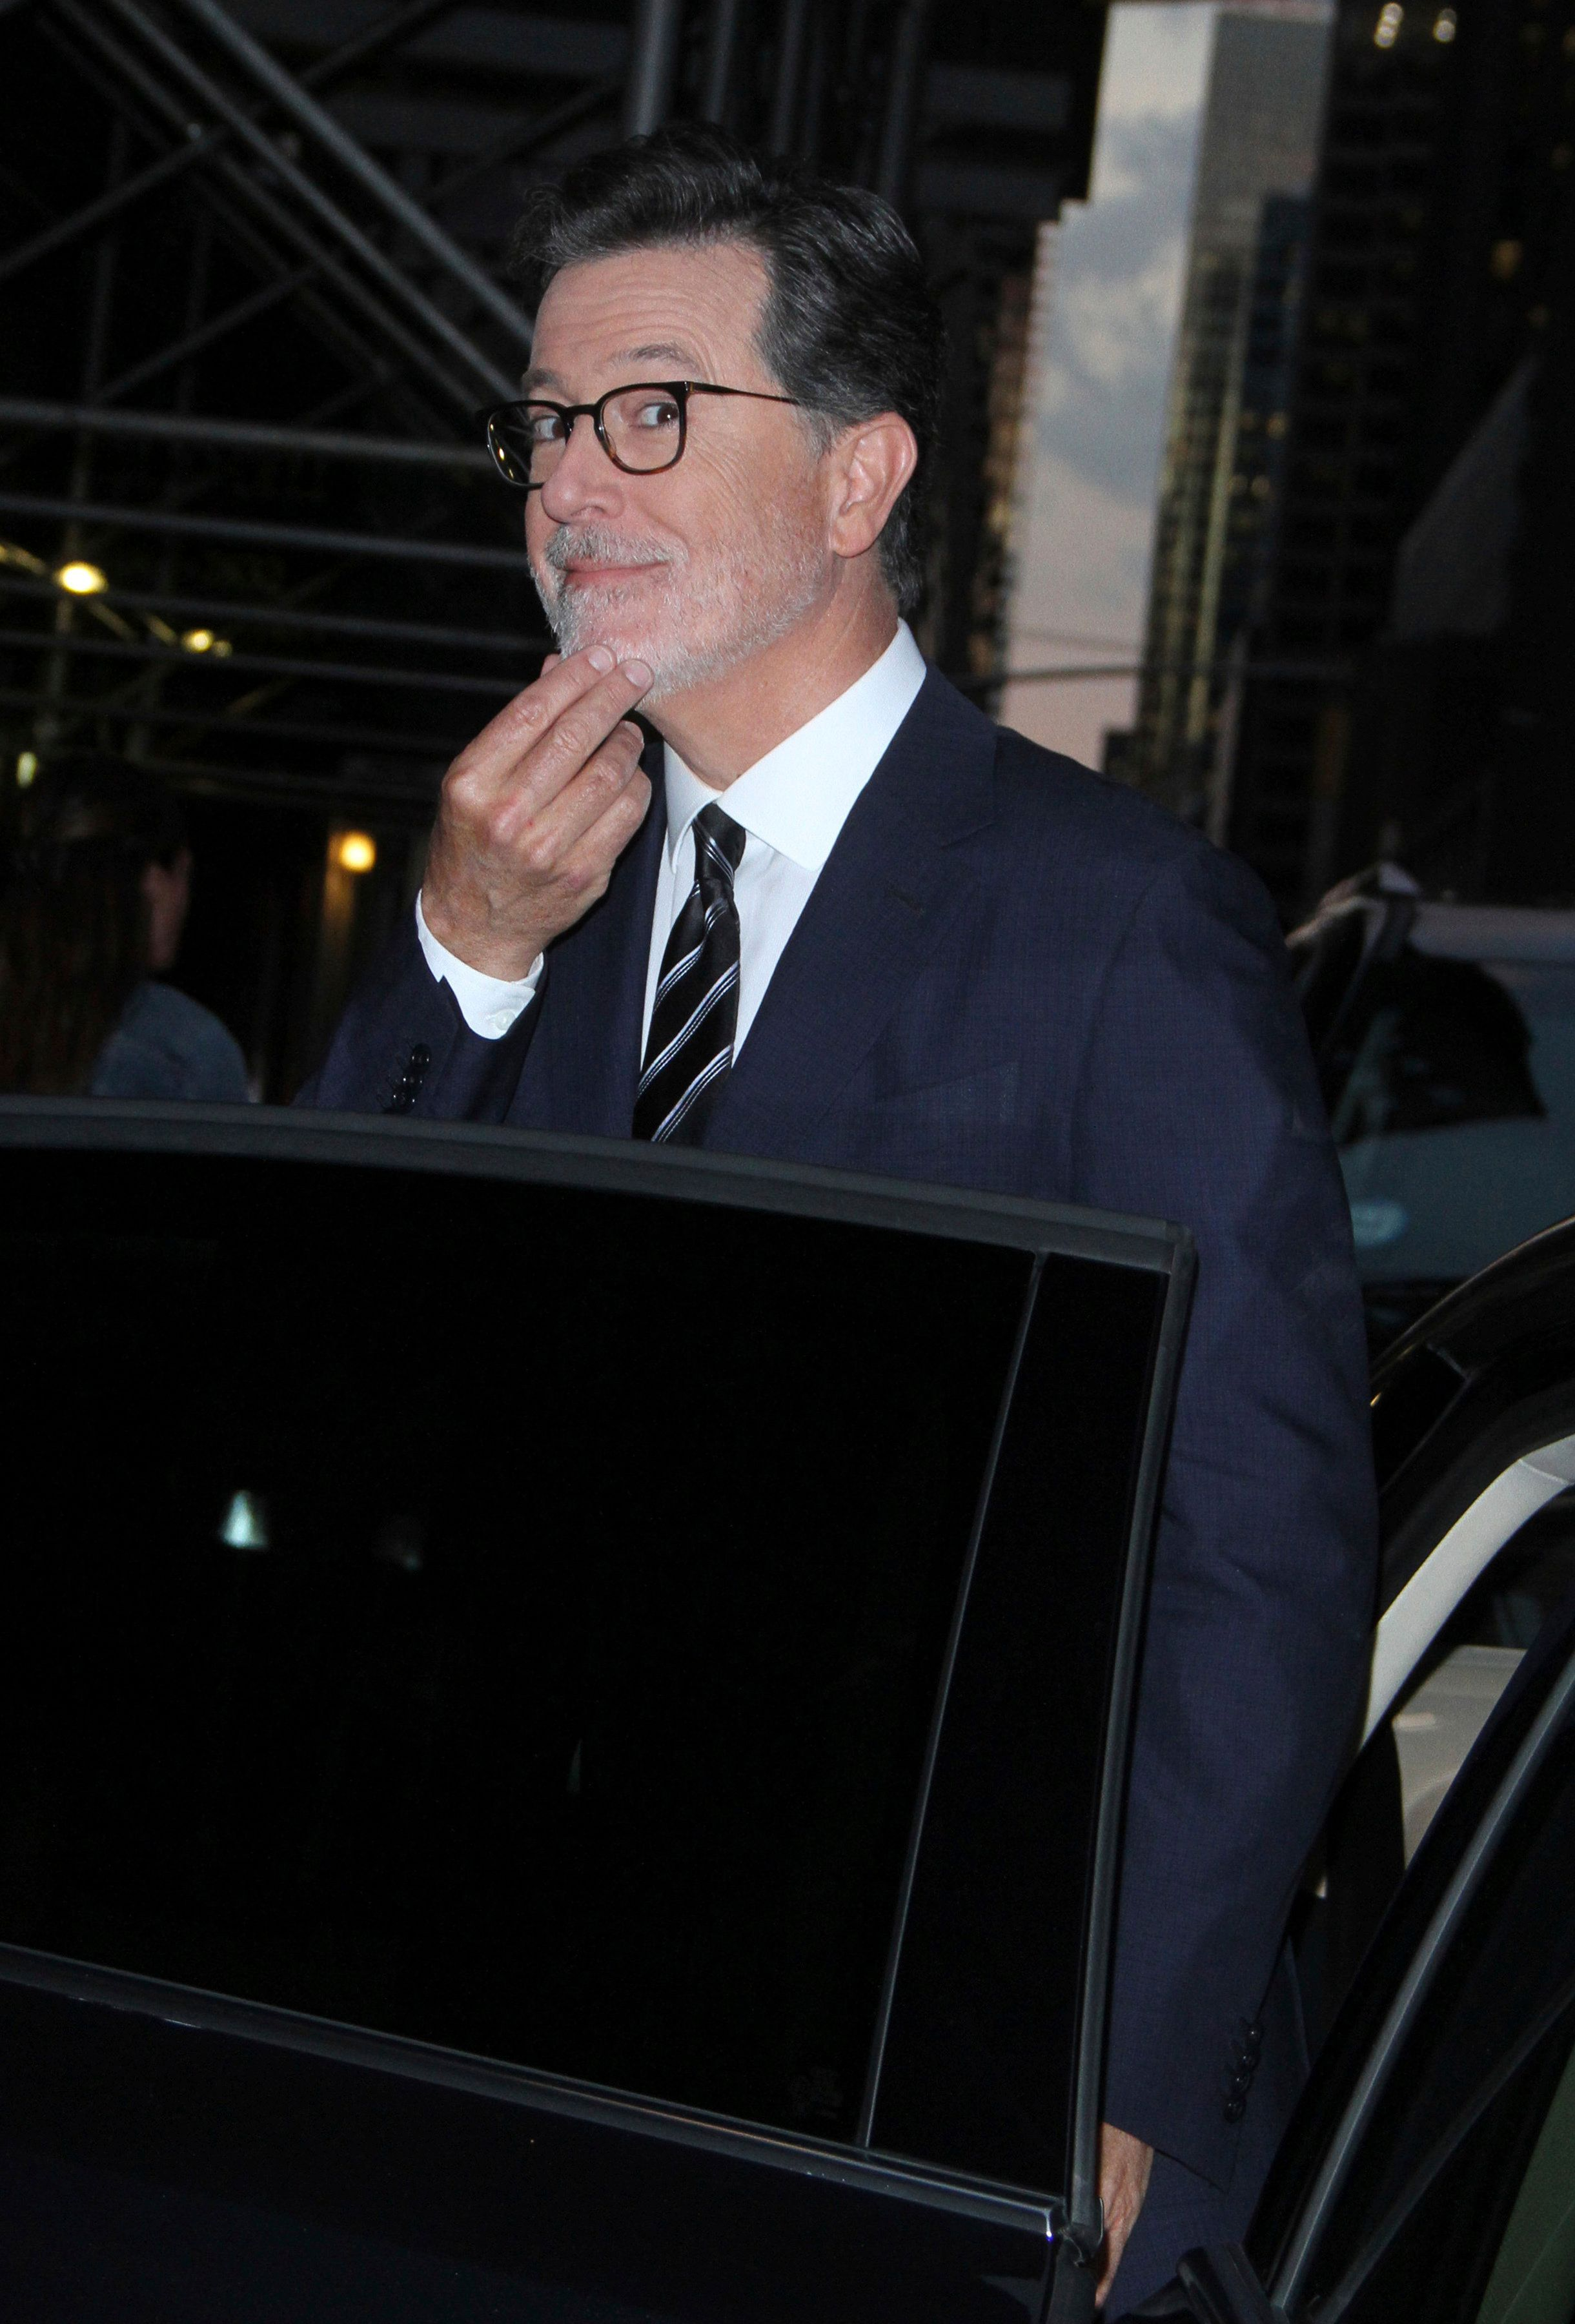 NEW YORK, NY - September 04: Stephen Colbert seen exiting The Late Show studio in New York City on September 04, 2018. Credit: RW/MediaPunch /IPX